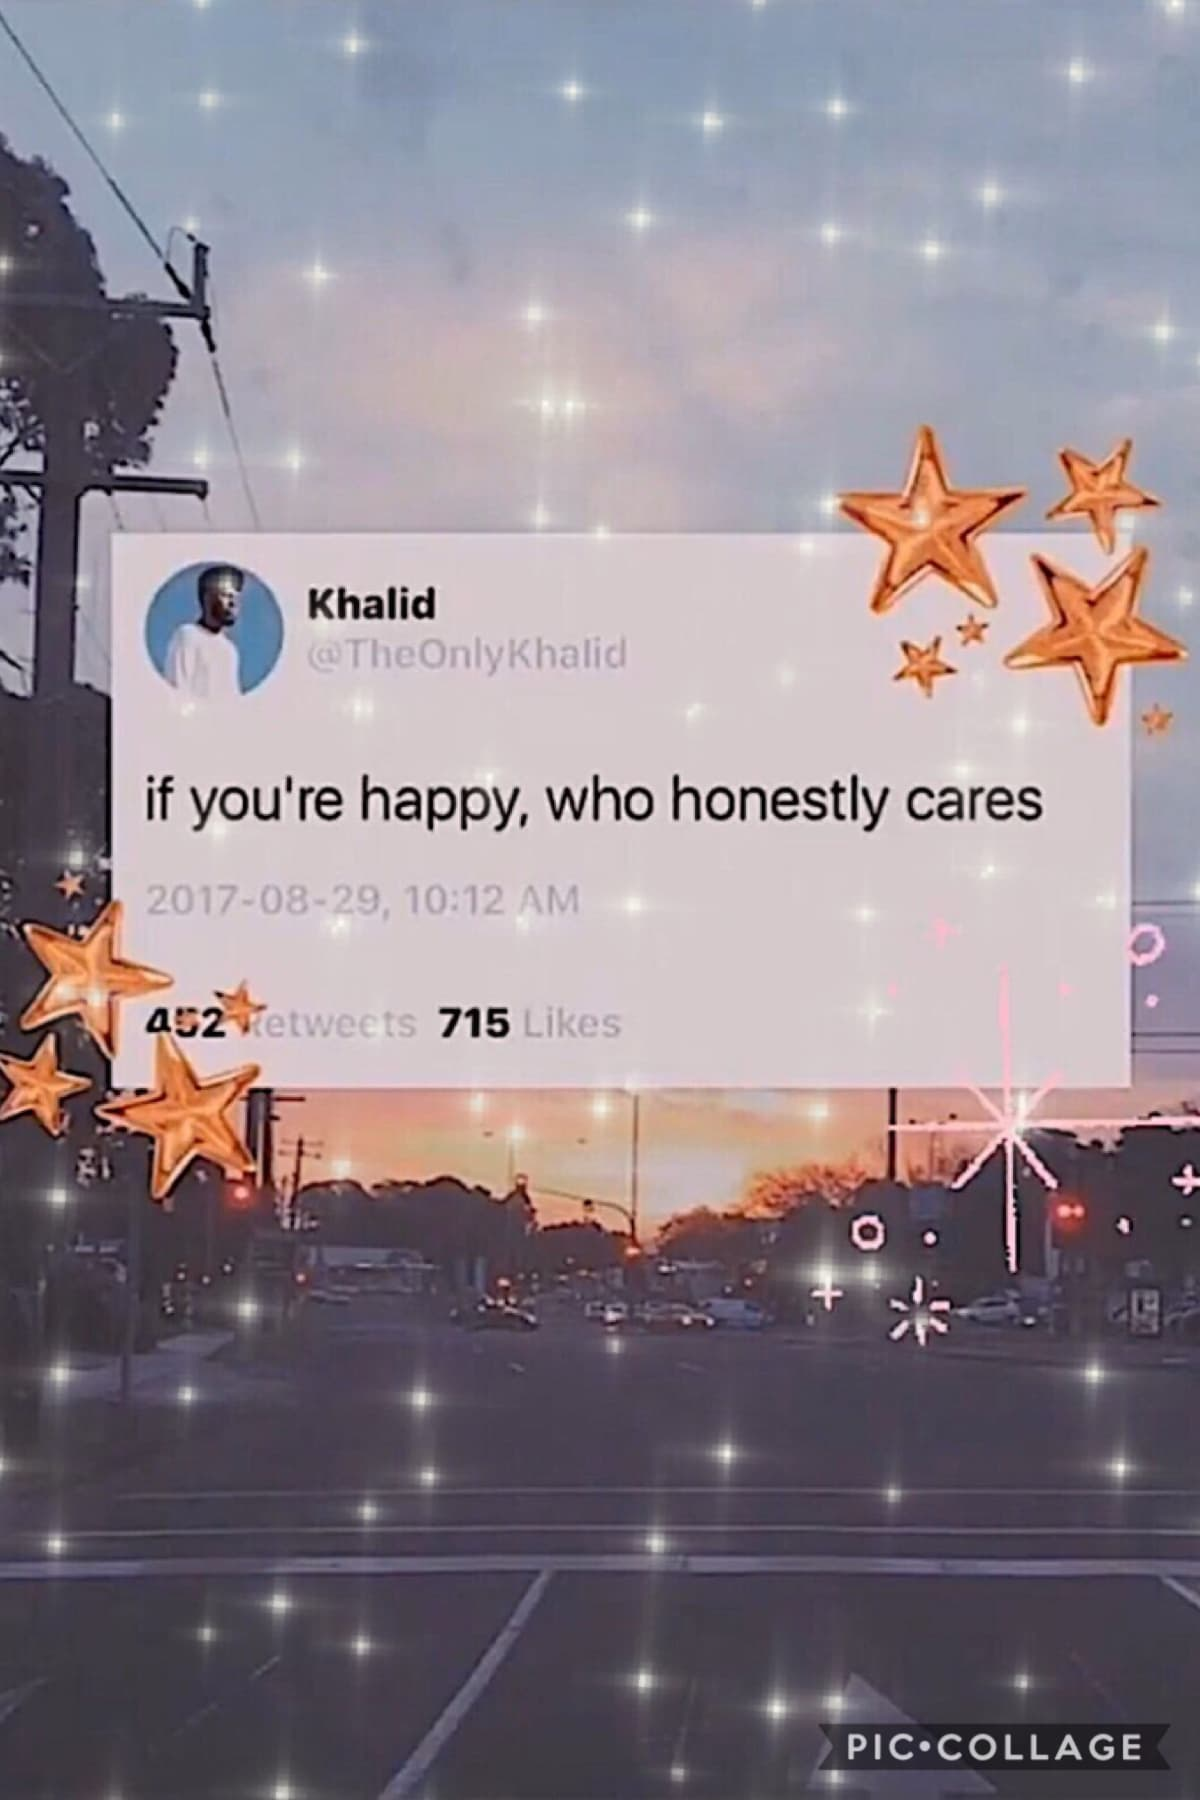 ⭐️If your happy who honestly cares⭐️